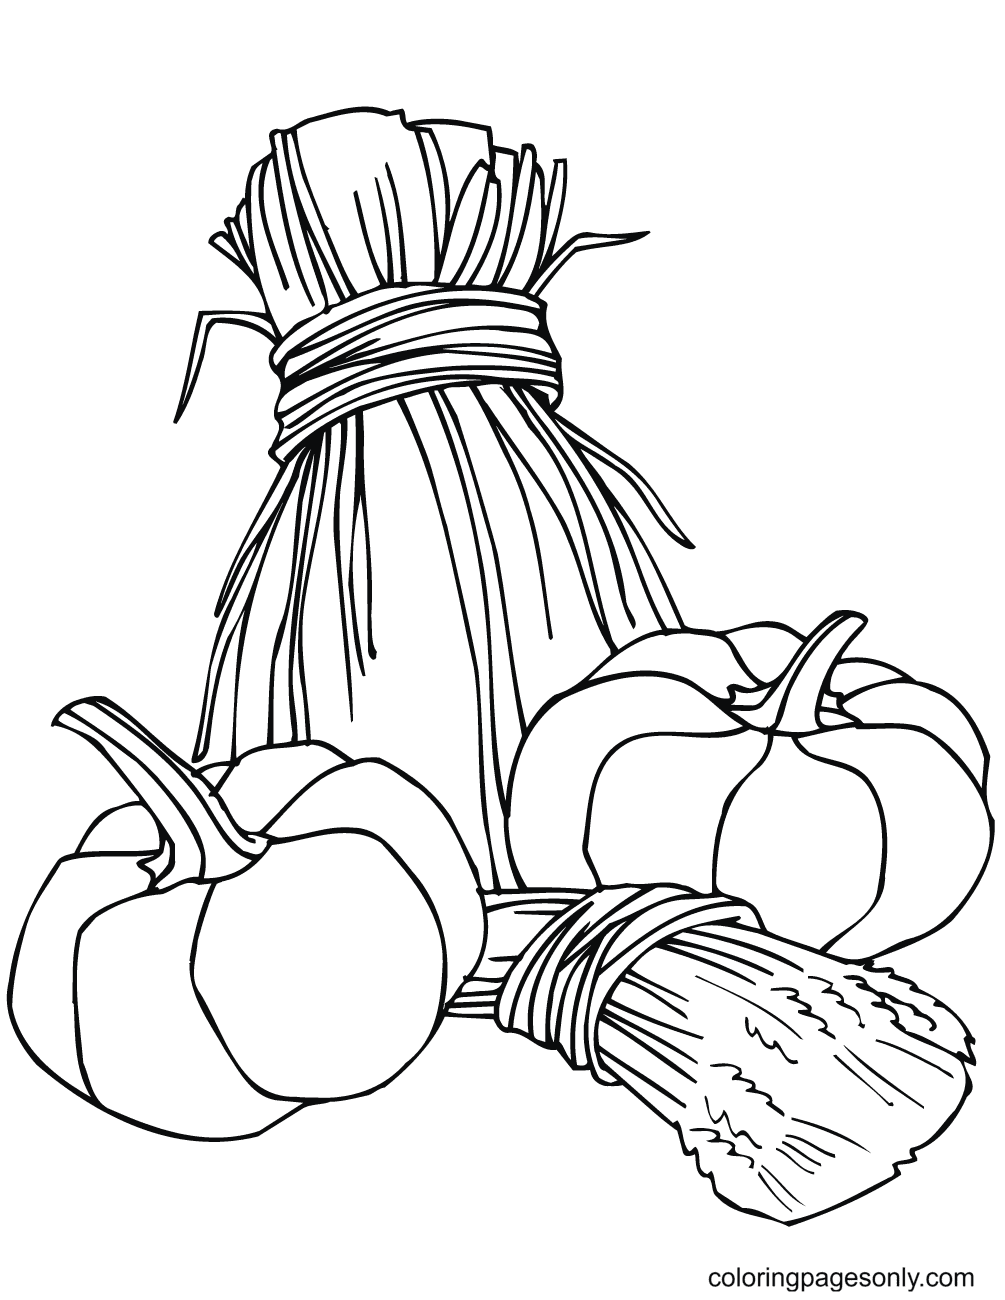 Pumpkins and Wheat Sheaves Coloring Page